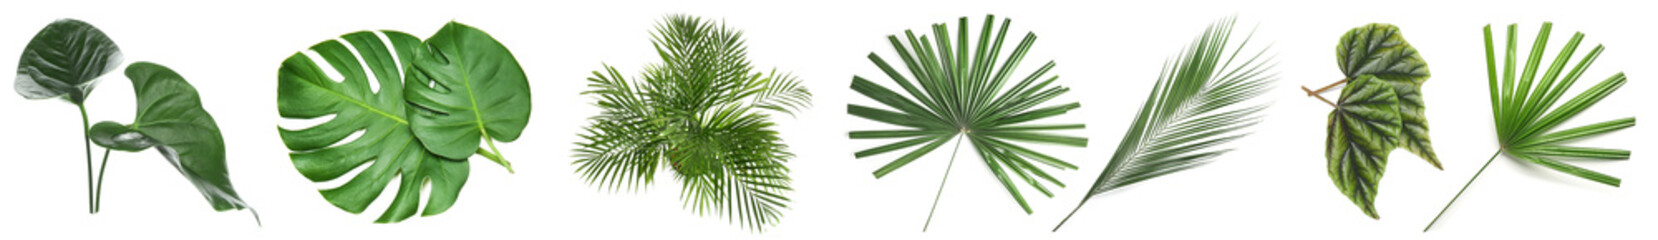 Papiers peints Vegetal Set of green tropical leaves on white background